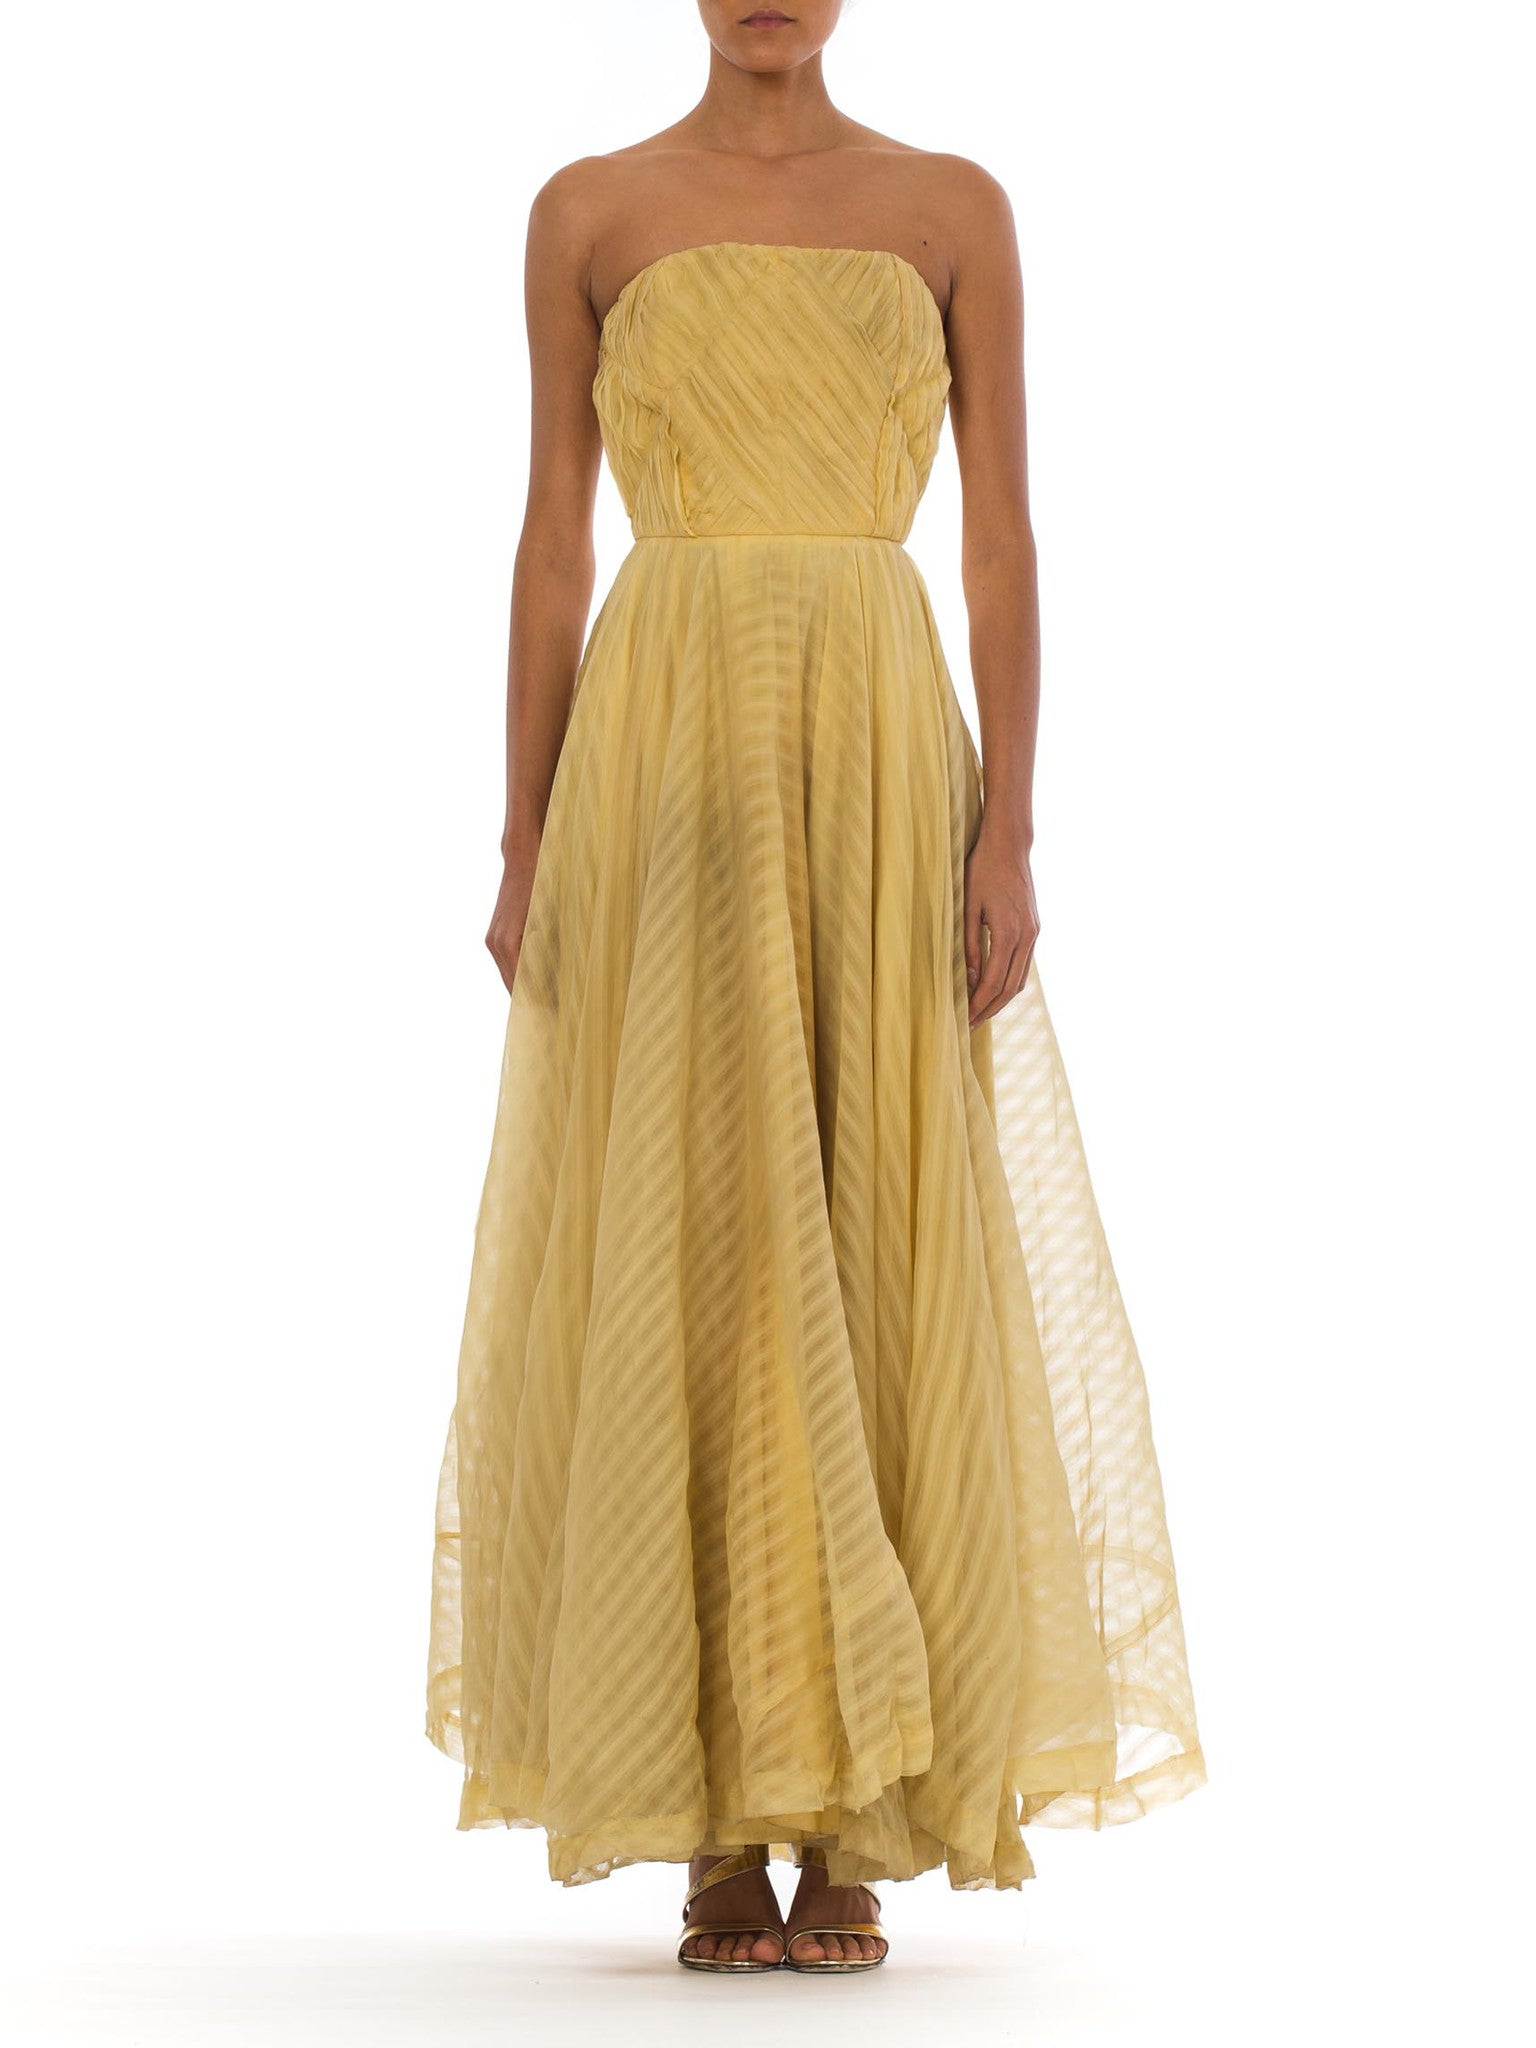 1940s Pale Yellow Striped Strapless Chiffon Gown